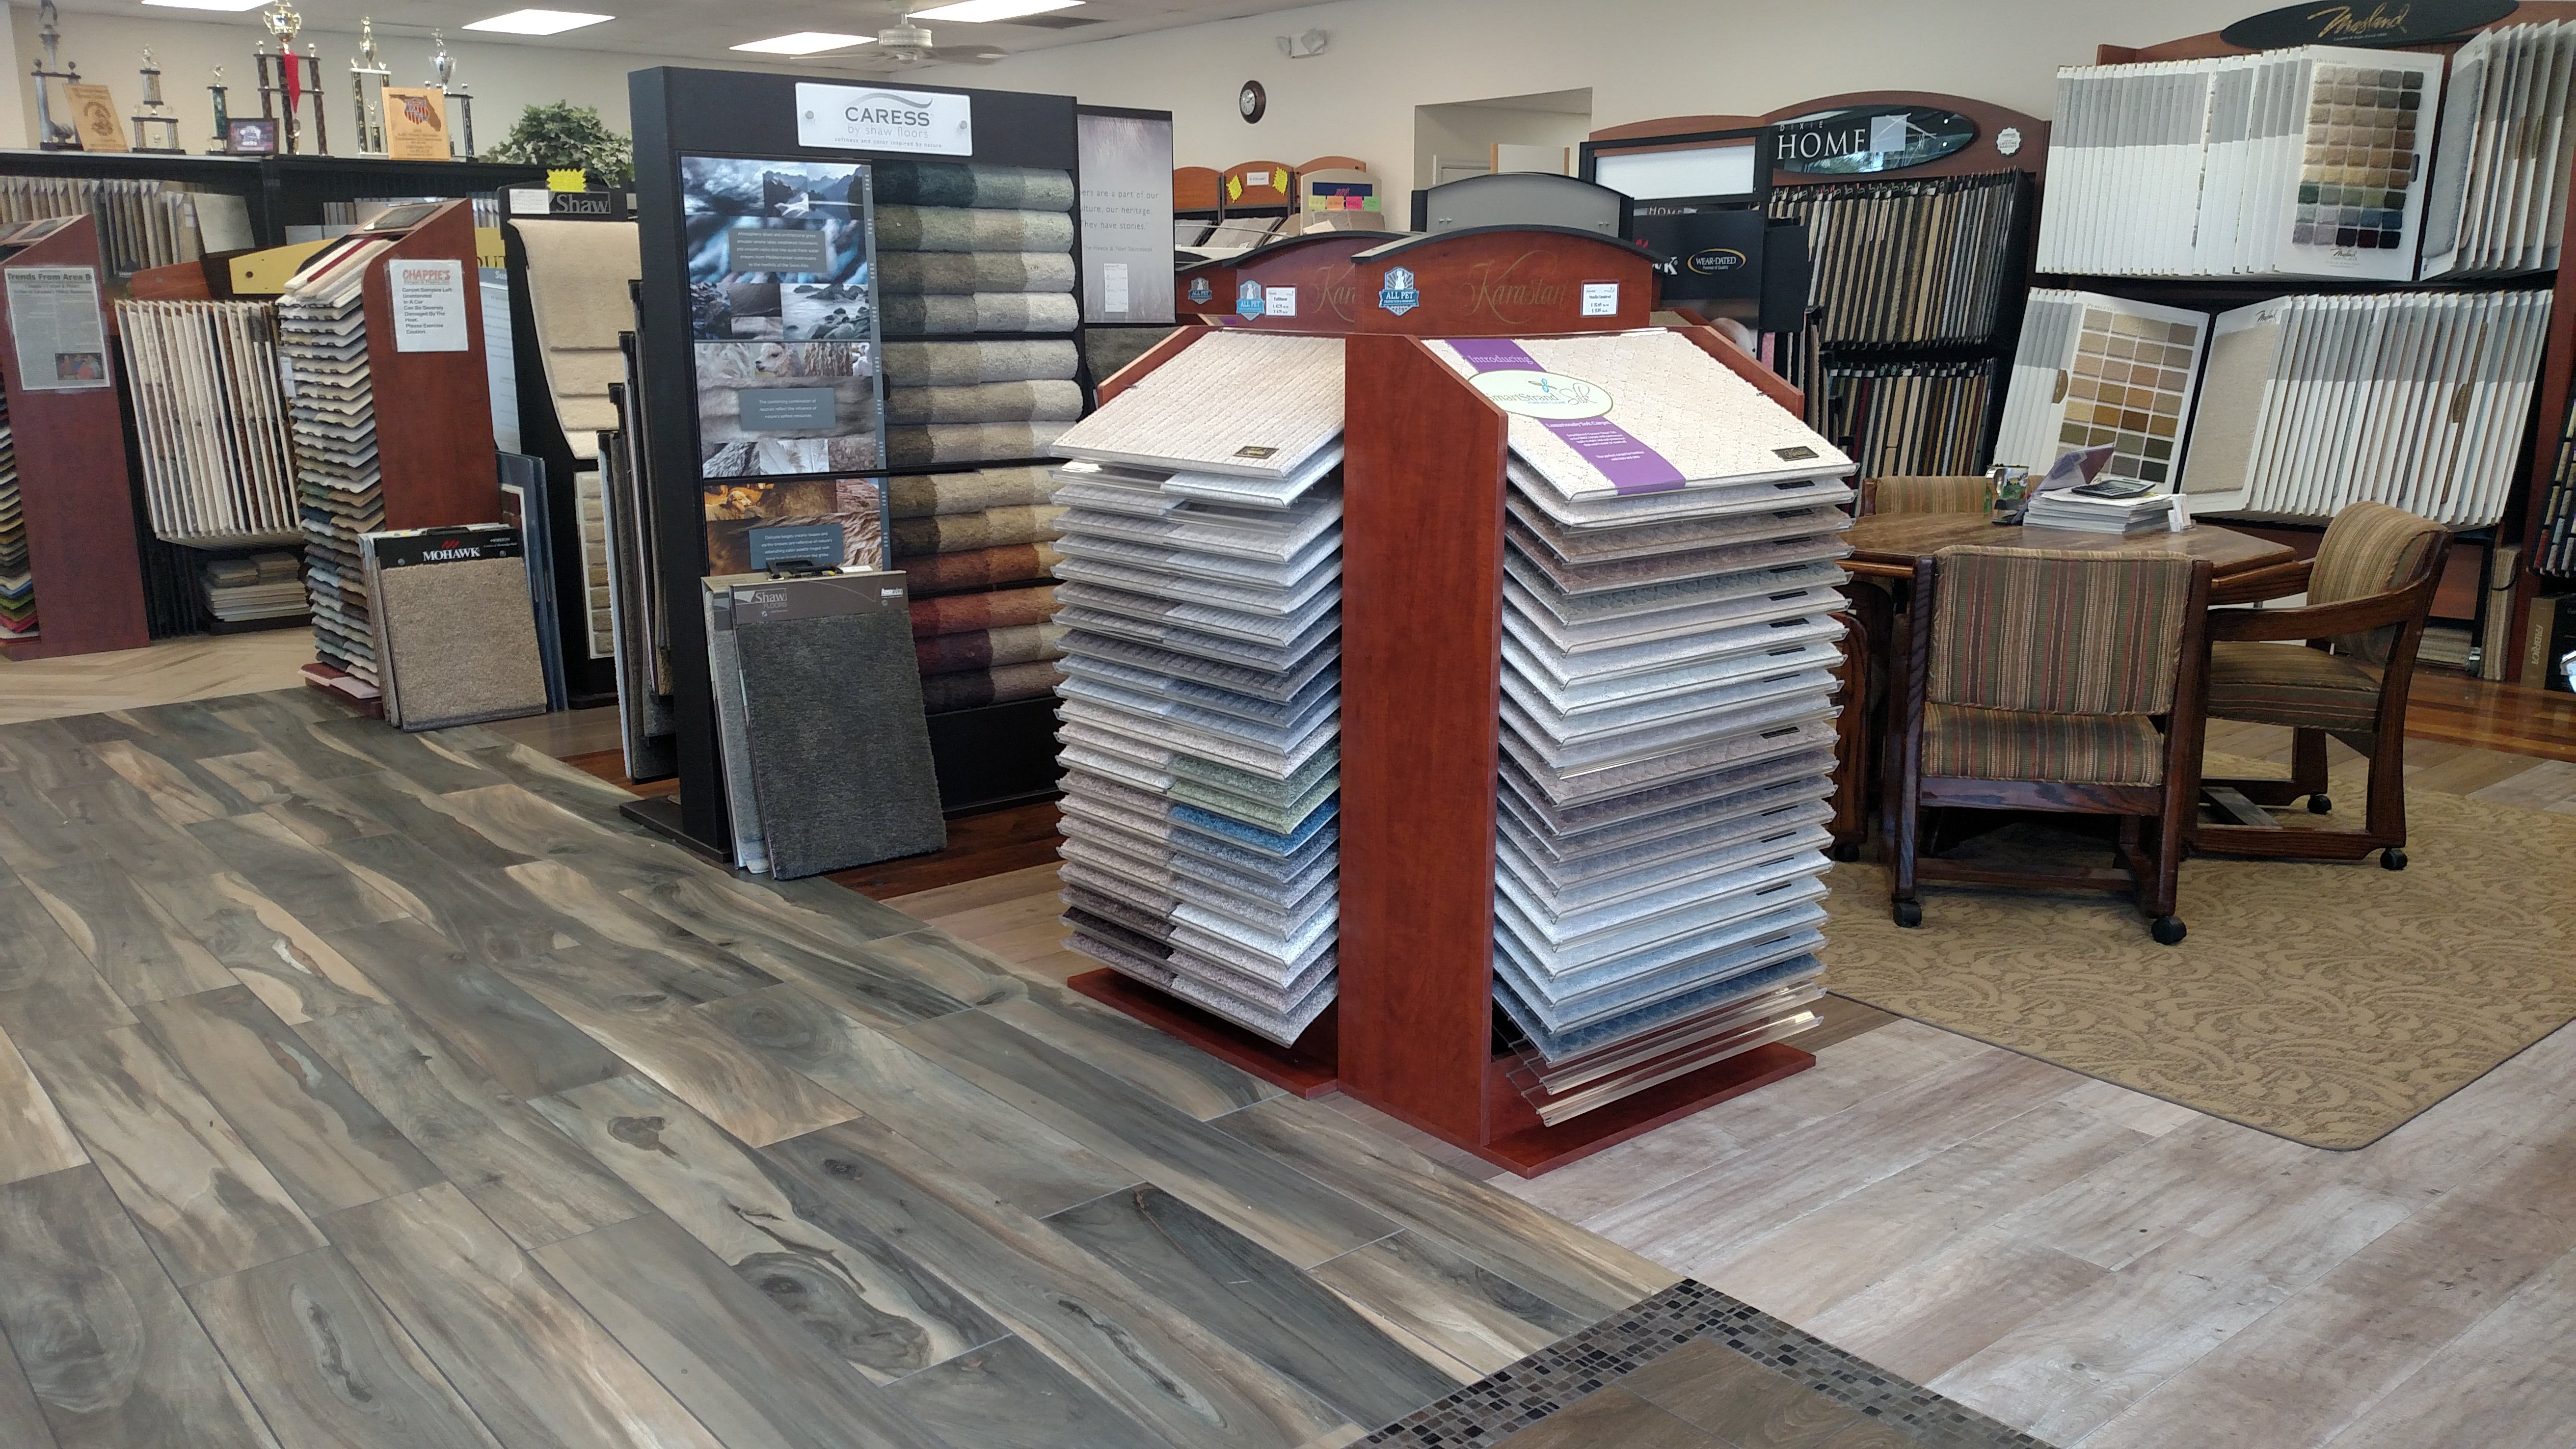 Chappies carpet floors inc flooring sarasota fl interior of show room panel display with a variety of carpet samples doublecrazyfo Gallery